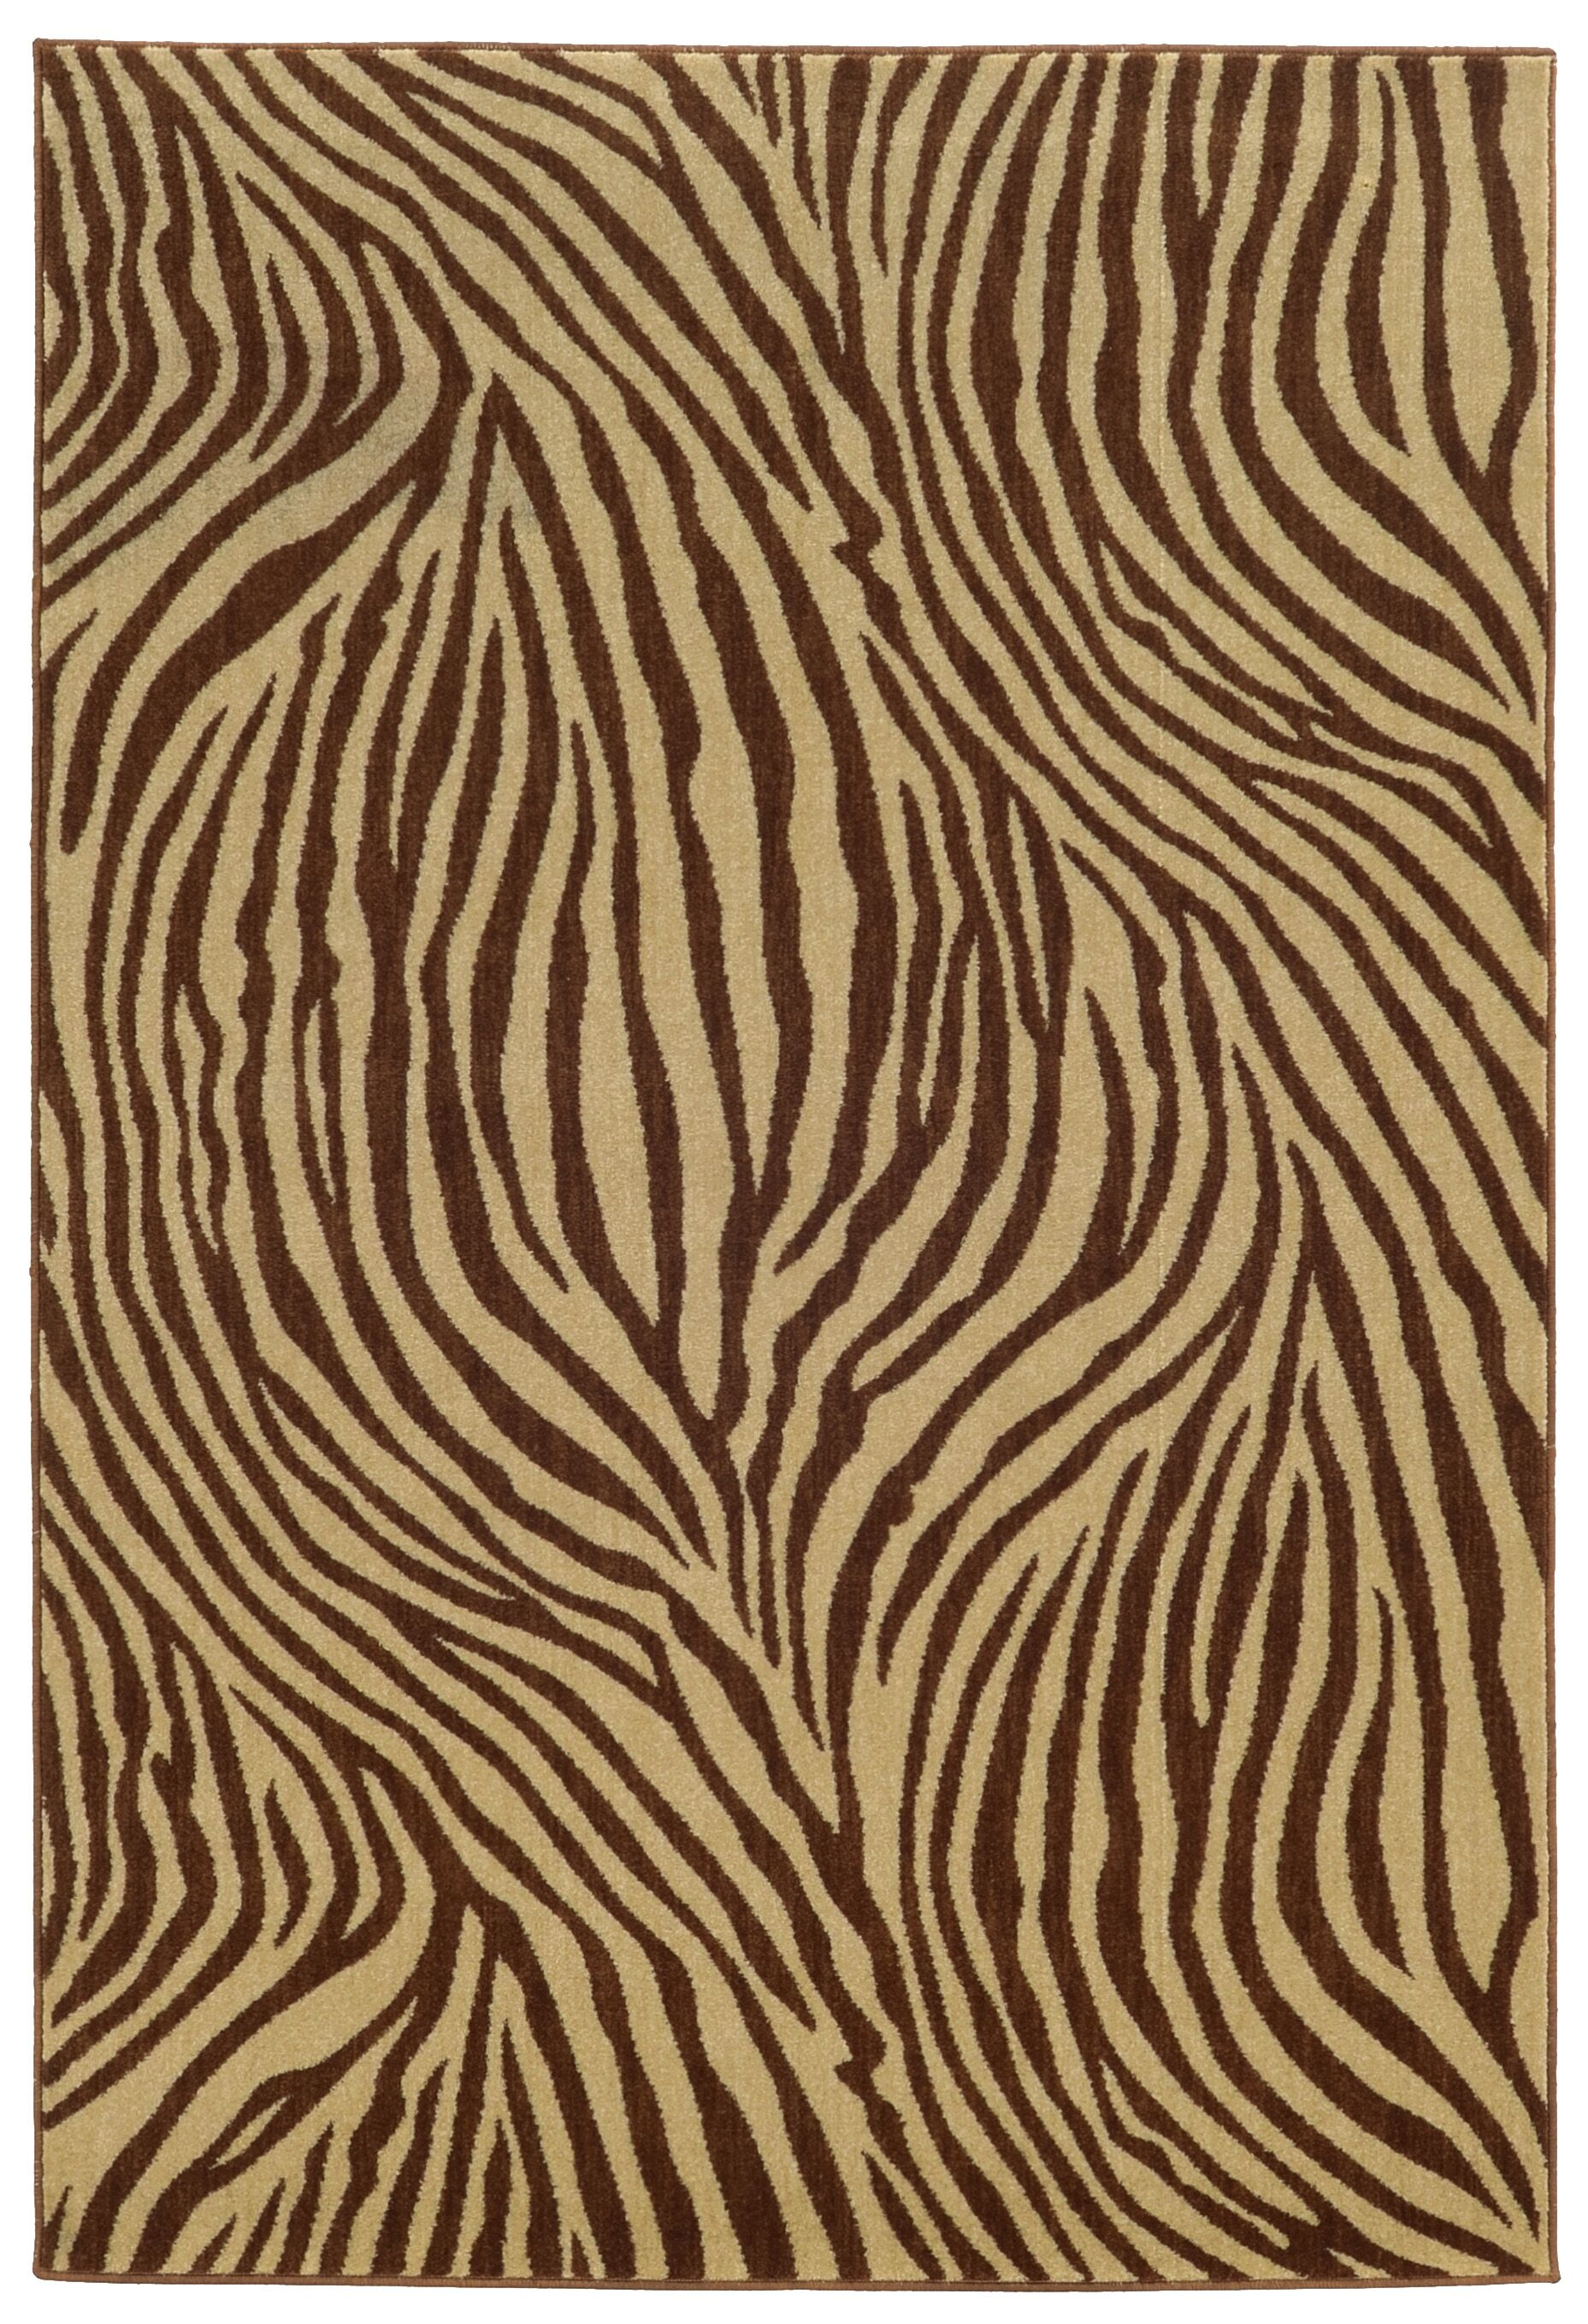 Tommy Bahama Voyage Beige / Brown Abstract Rug Rug Size: Rectangle 7'10